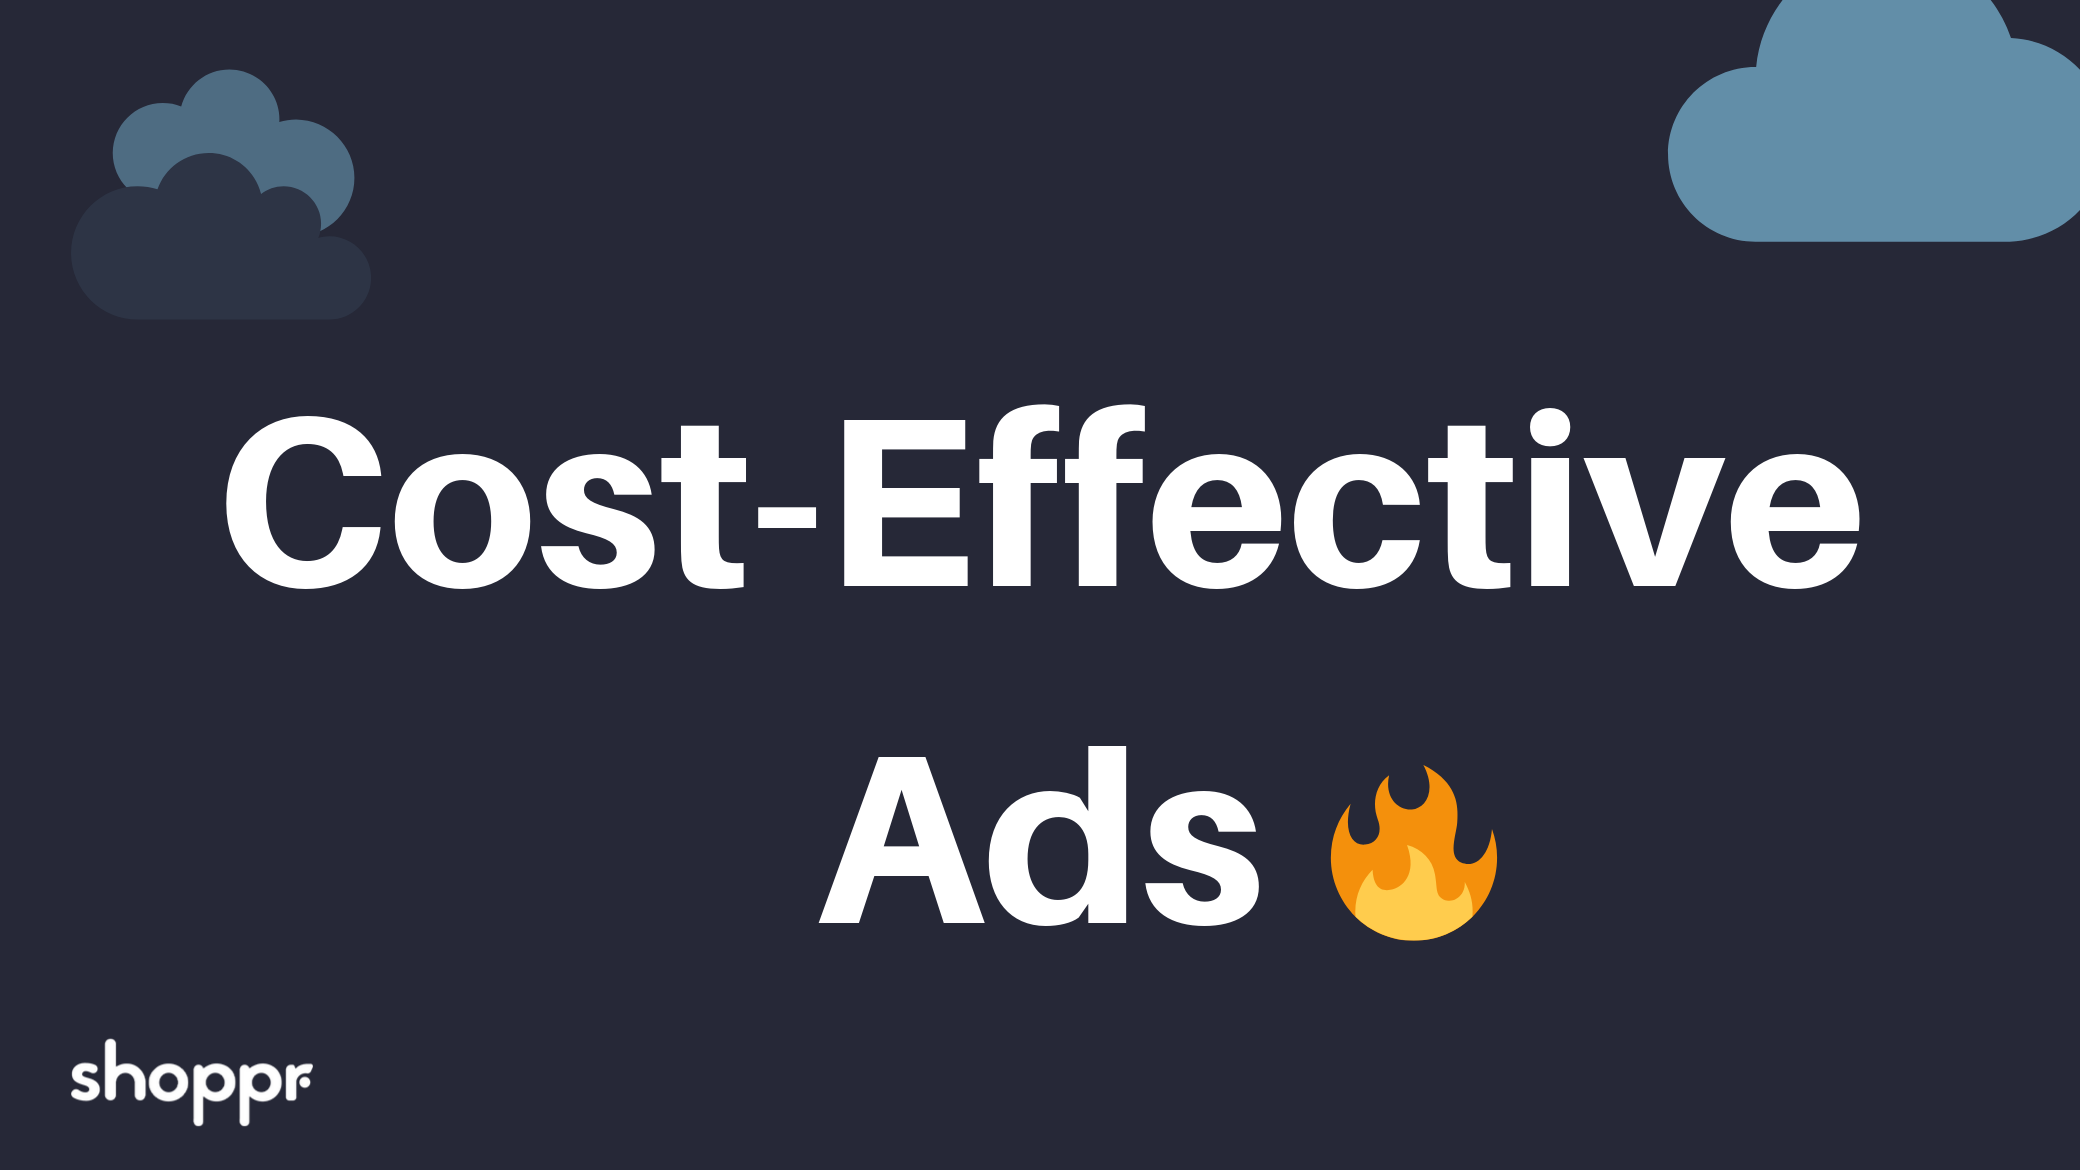 Cost-Effective Ad platforms for E-Commerce Marketing